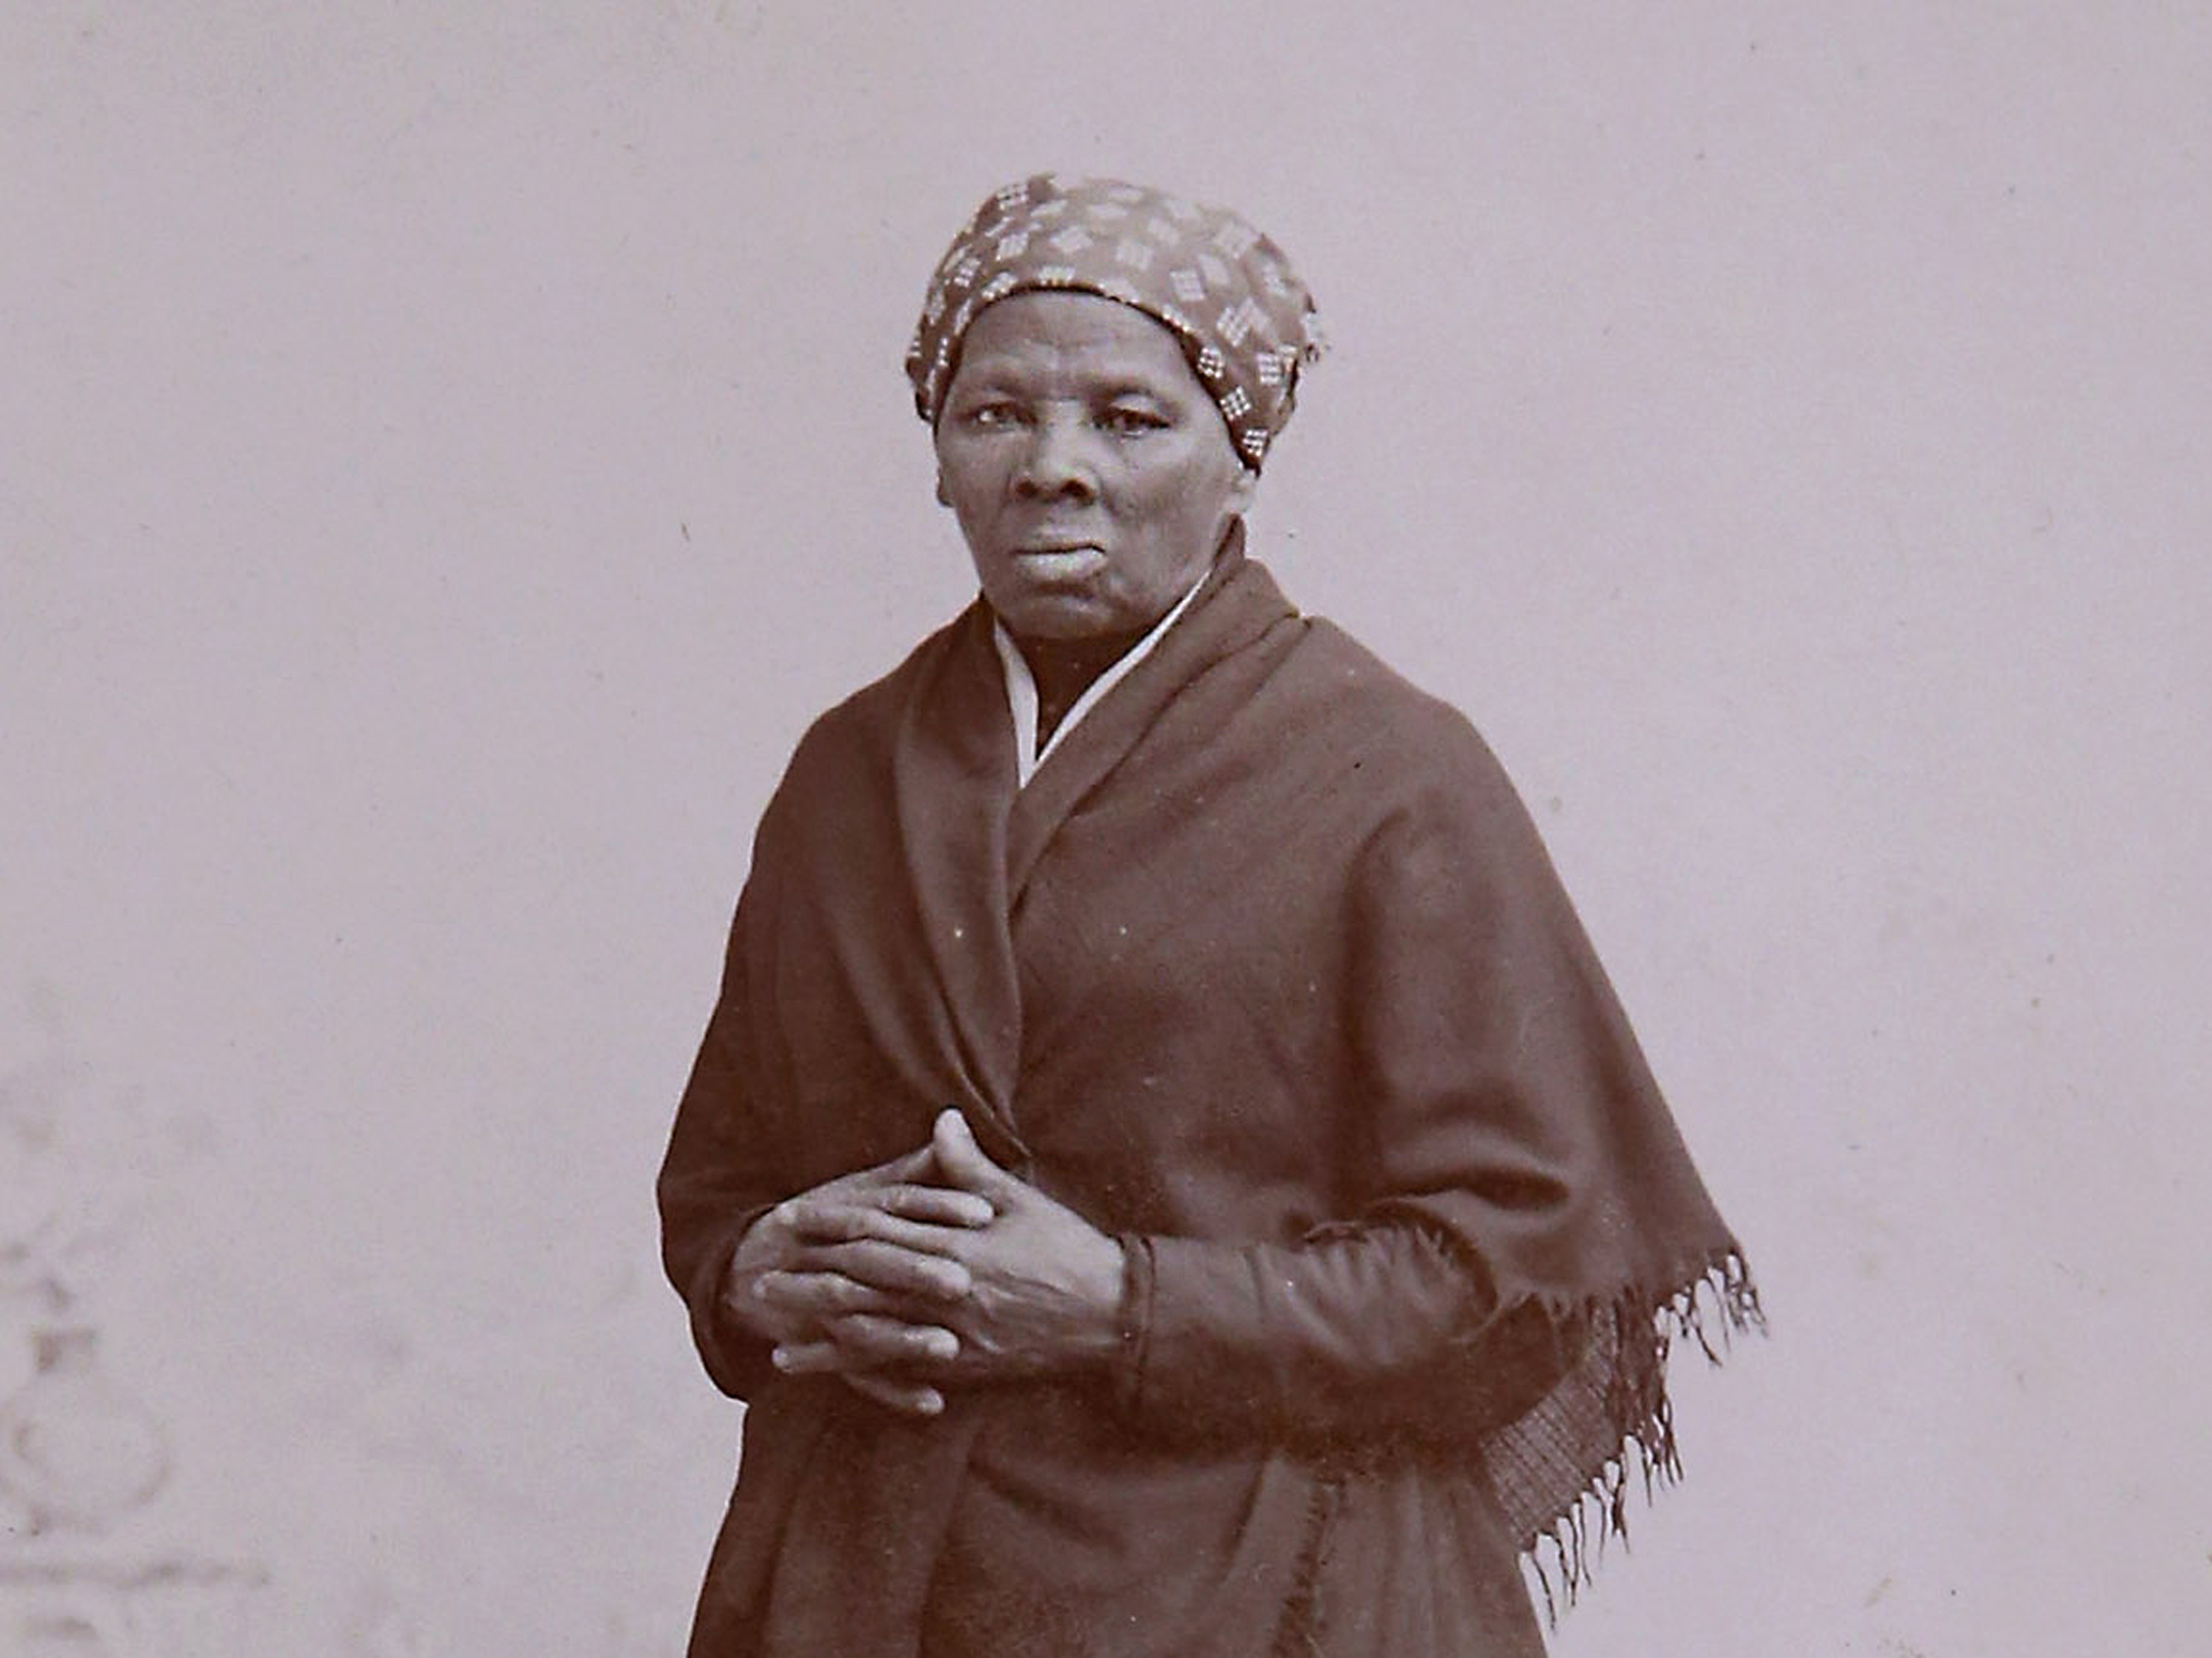 Treasury Department Launches Investigation Into Delays Behind Harriet Tubman $20 Bill